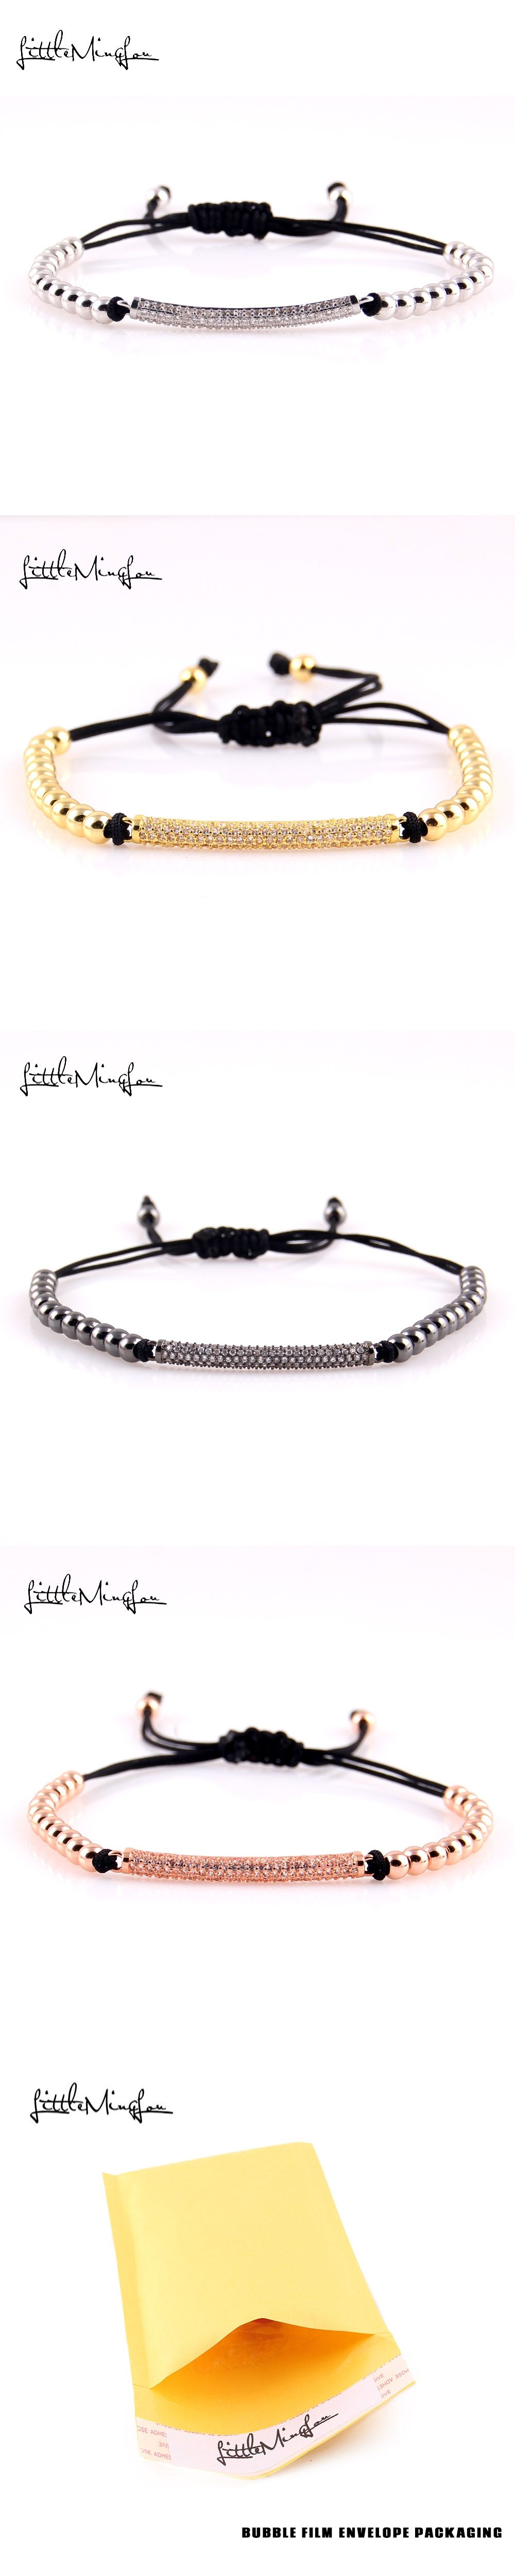 mens collections leather copy men by designs silver hook musti bracelet bangles